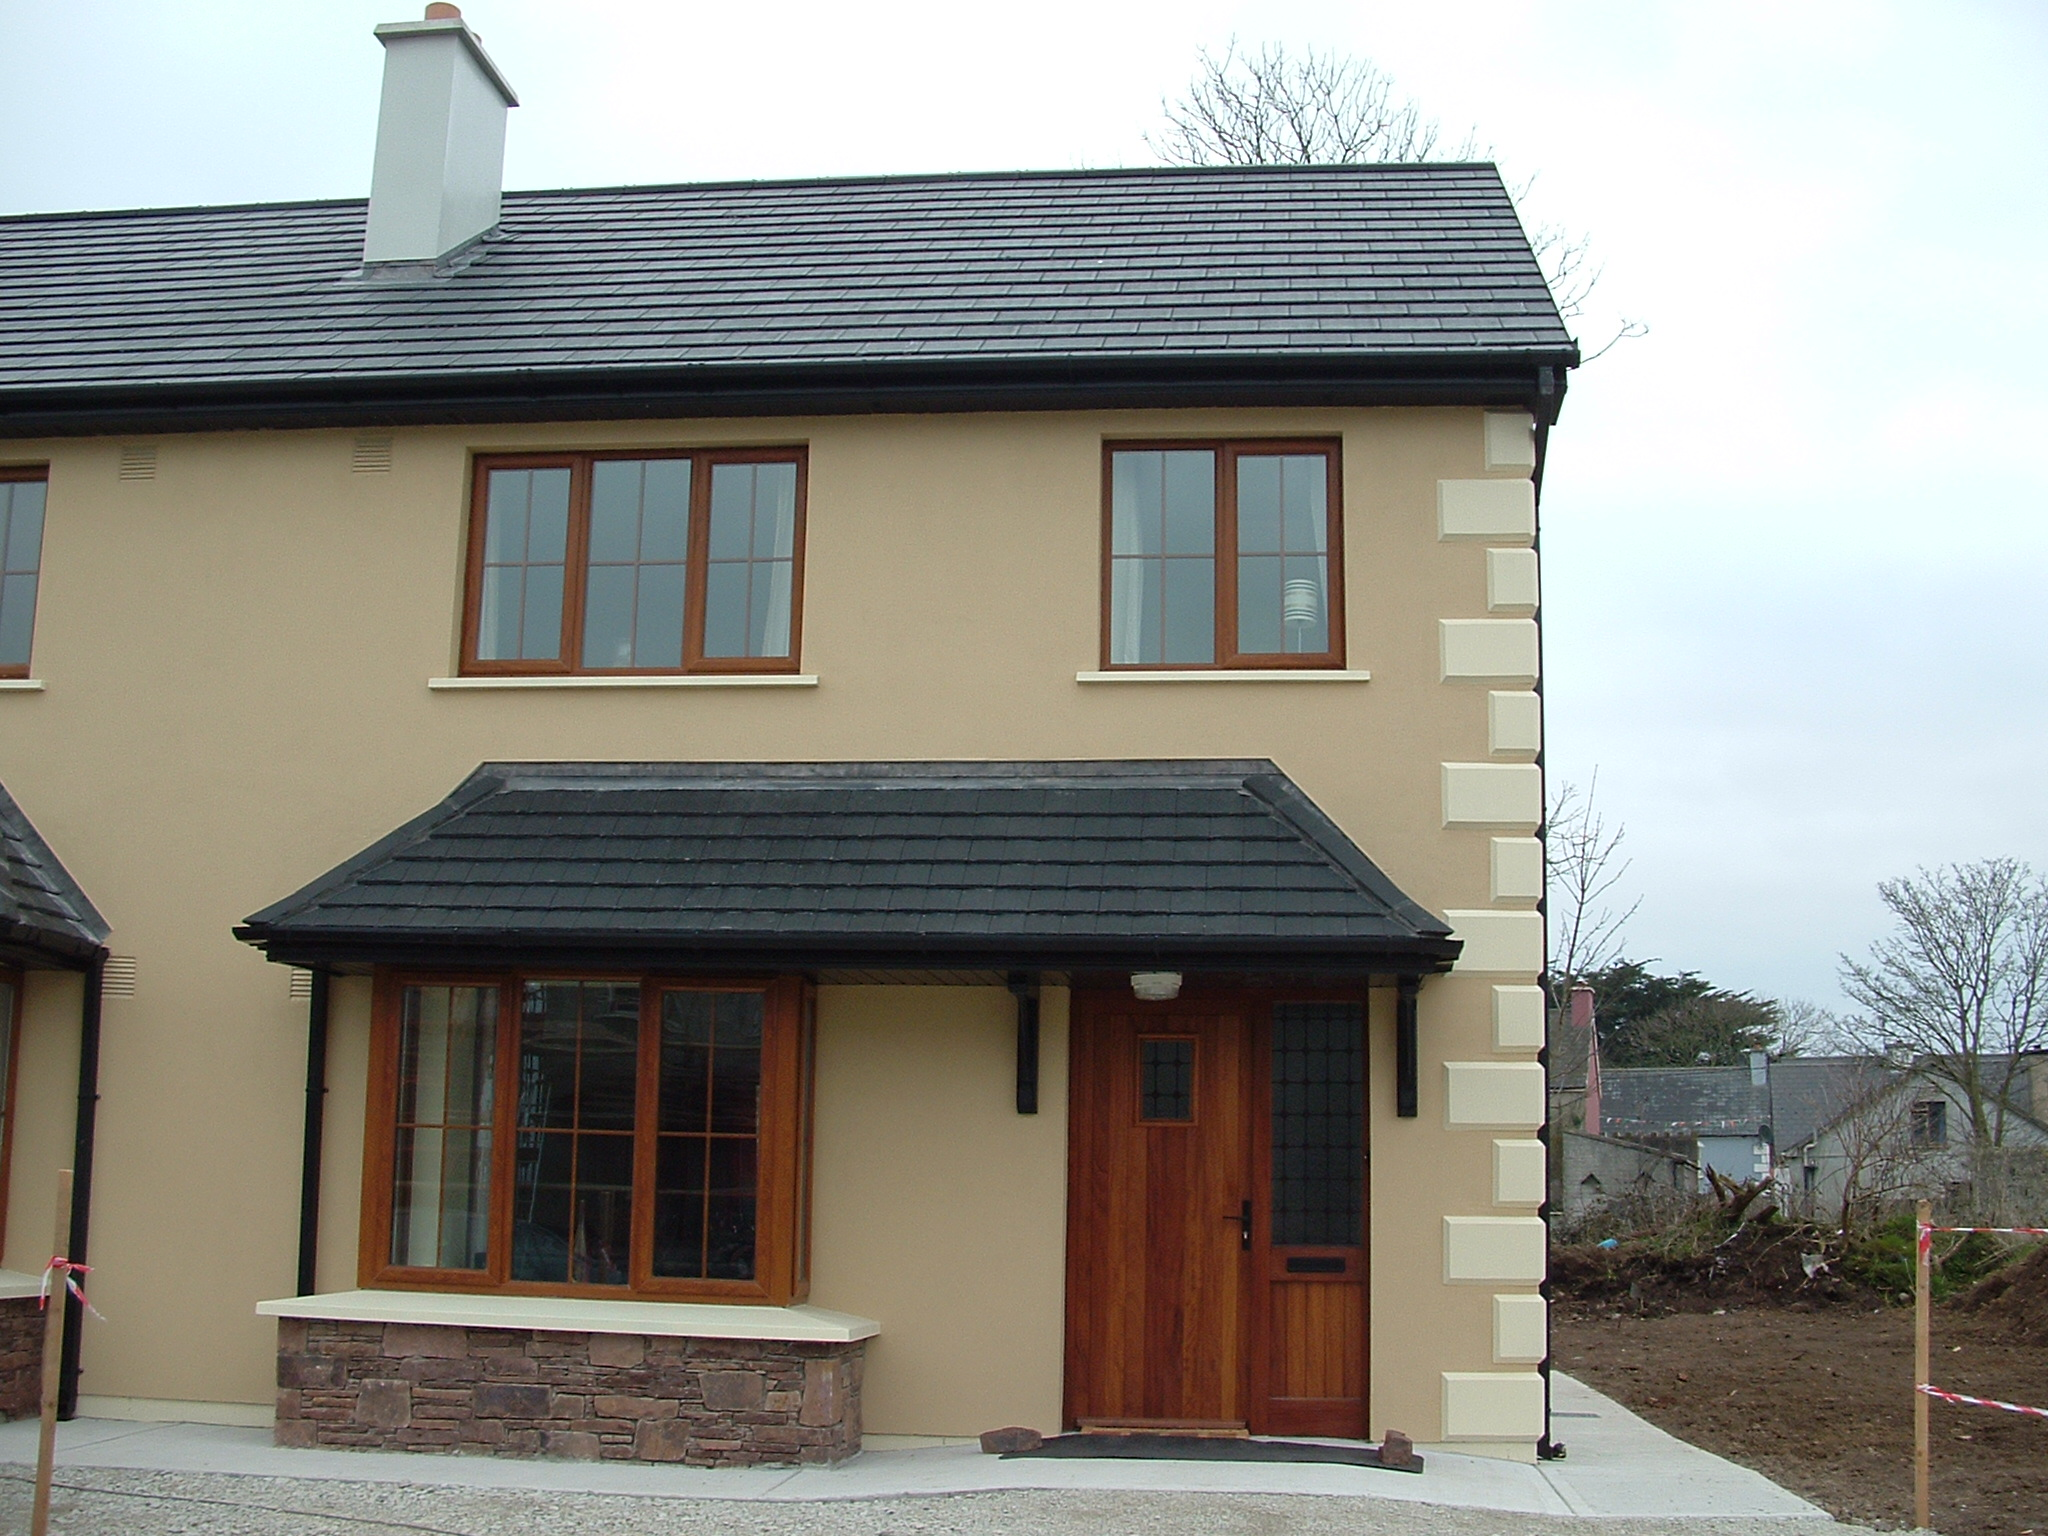 3 Tochar View, Causeway, Co. Kerry